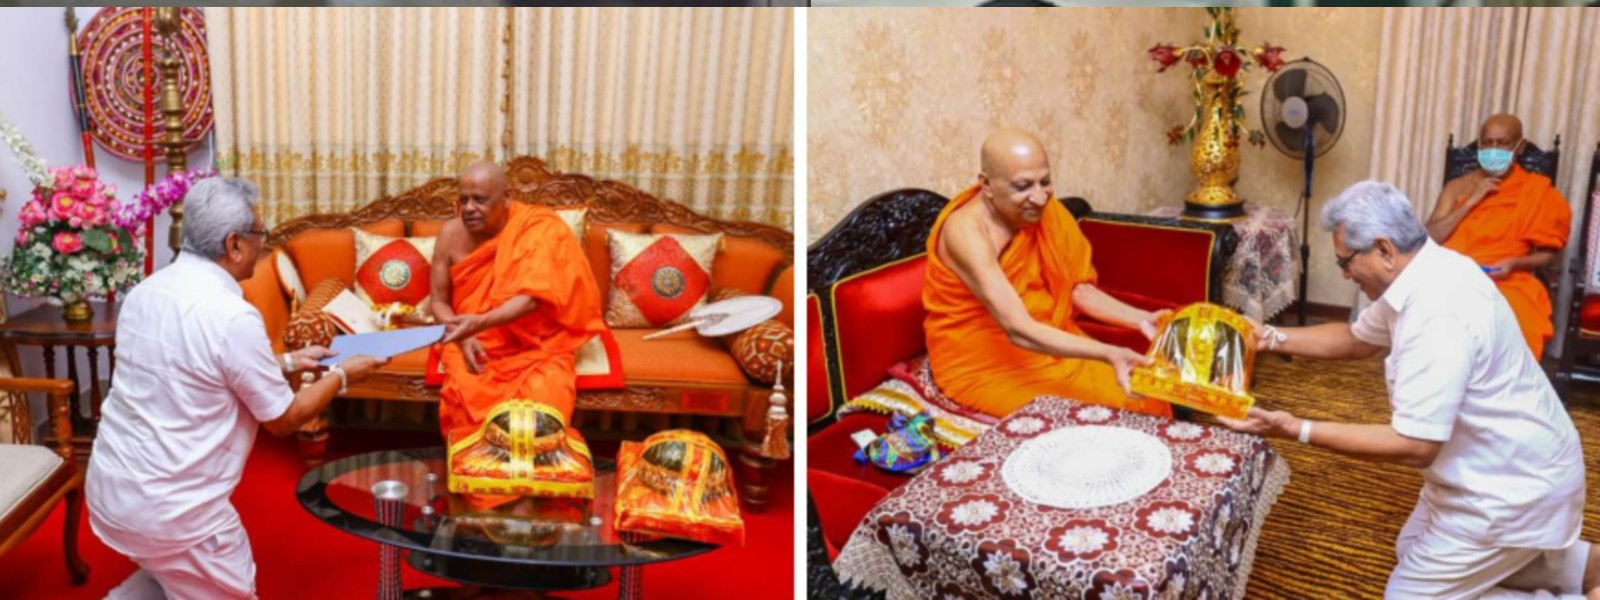 Temple of the Sacred Tooth Relic and Malwatte, Asgiriya chapters donate Rs. 20 million to COVID-19 fund